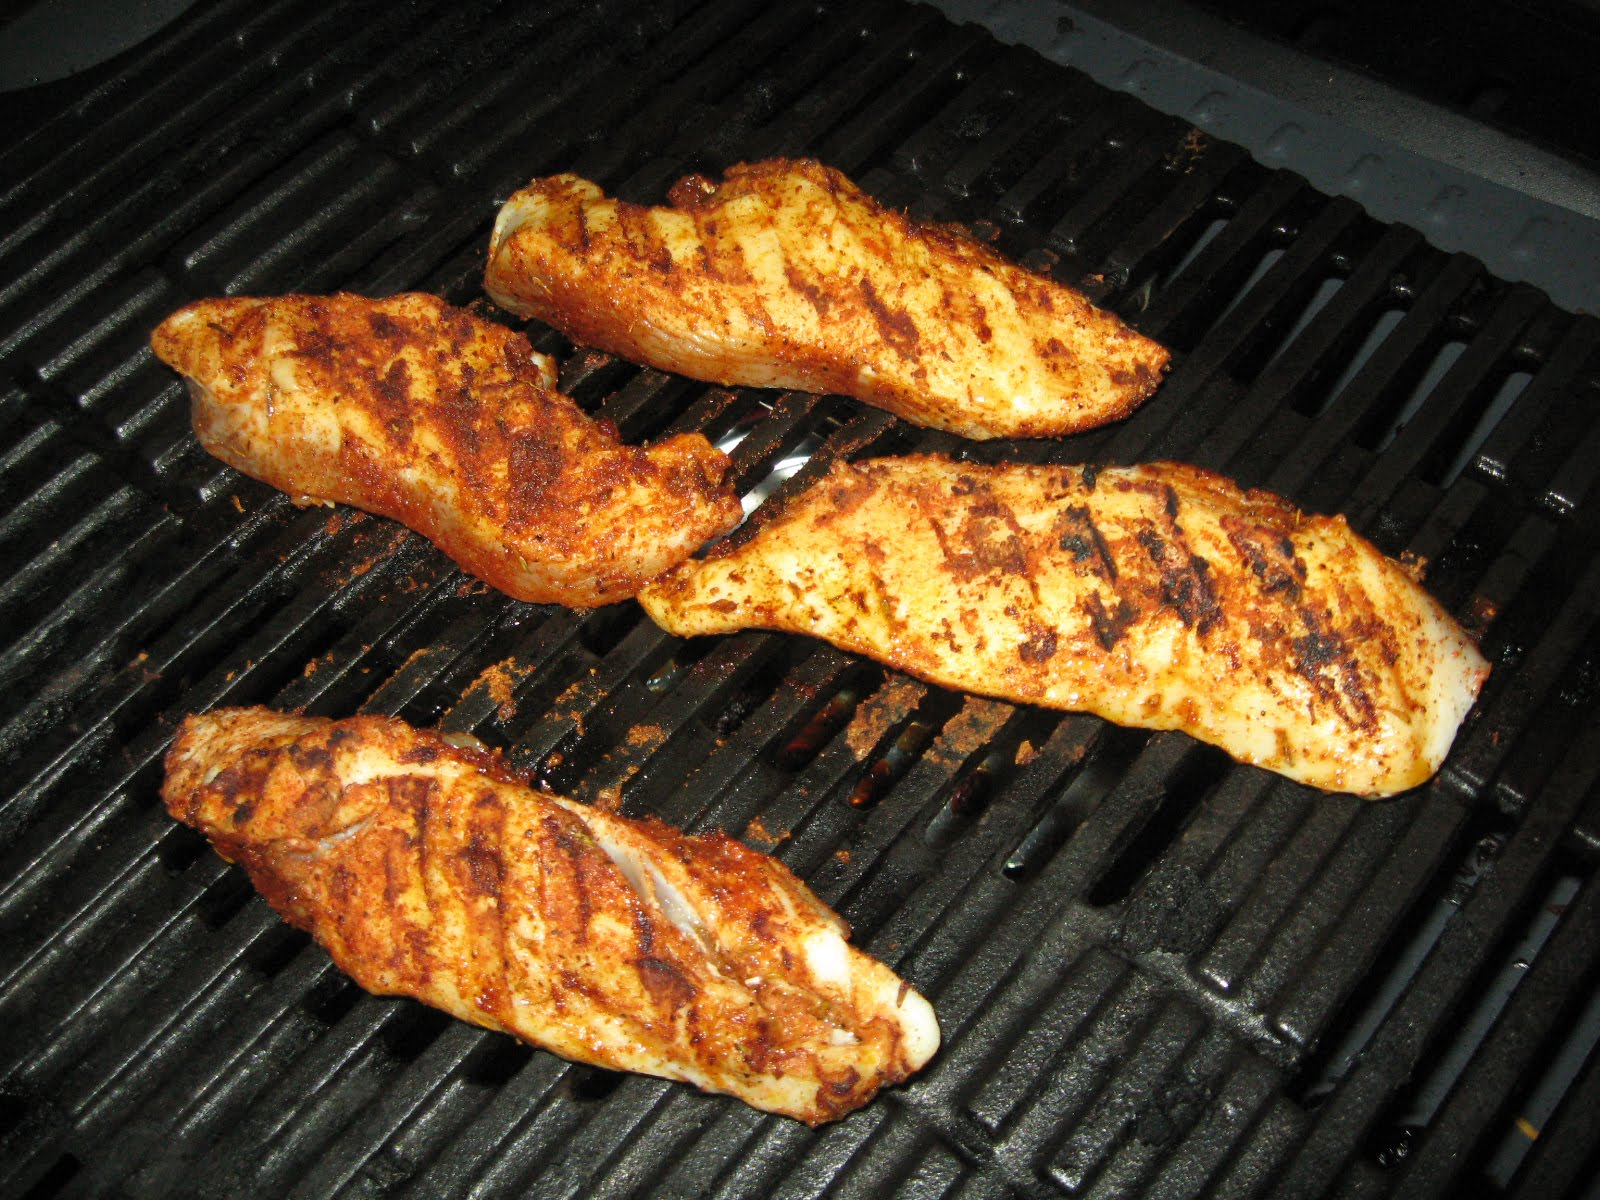 ... Grilled Chicken - Maxing the Flavor and Fun with Rooster Booster BBQ